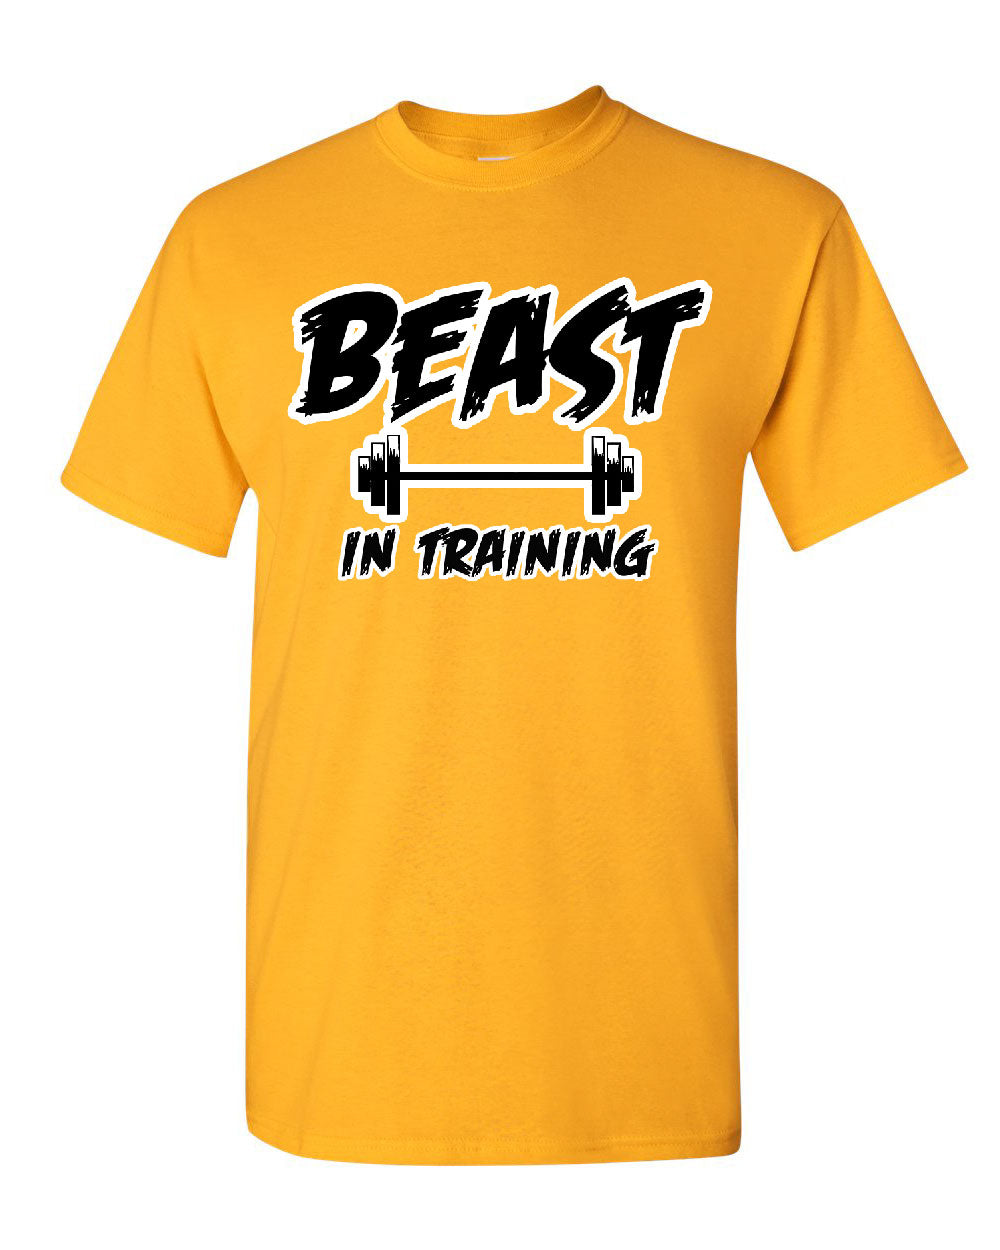 Beast In Training T Shirt Funny Gym Workout Fitness Tee